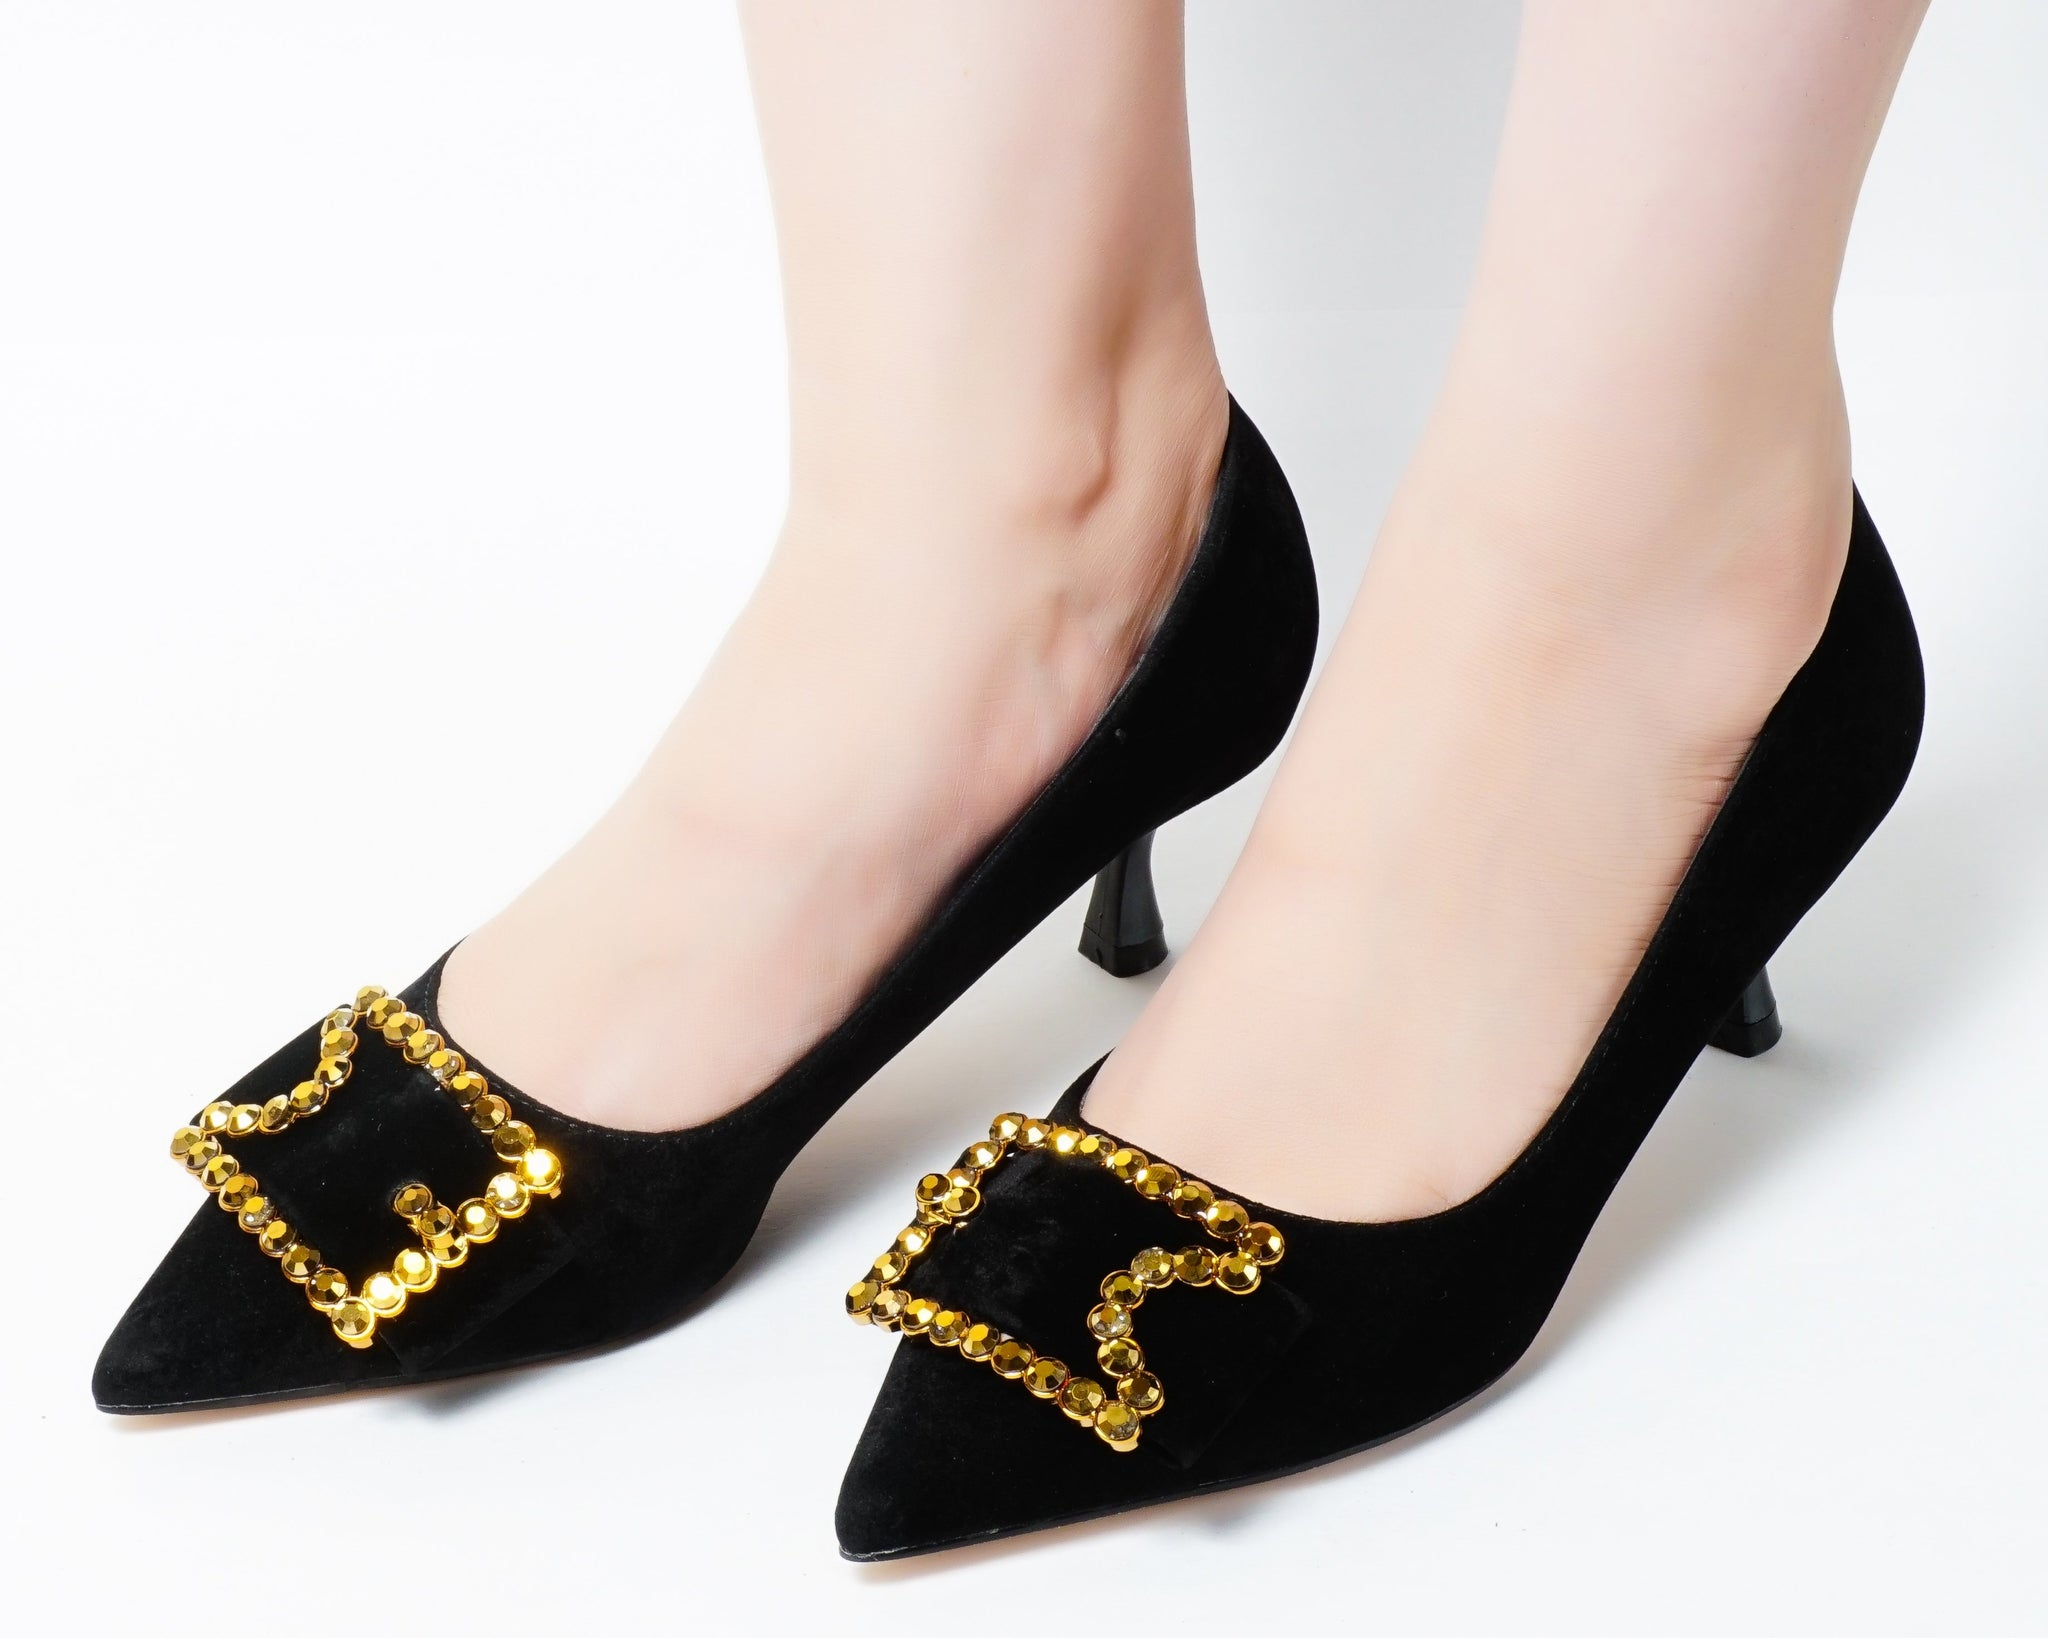 Ikon Black | Pumps | Low heels | Dech barrouci